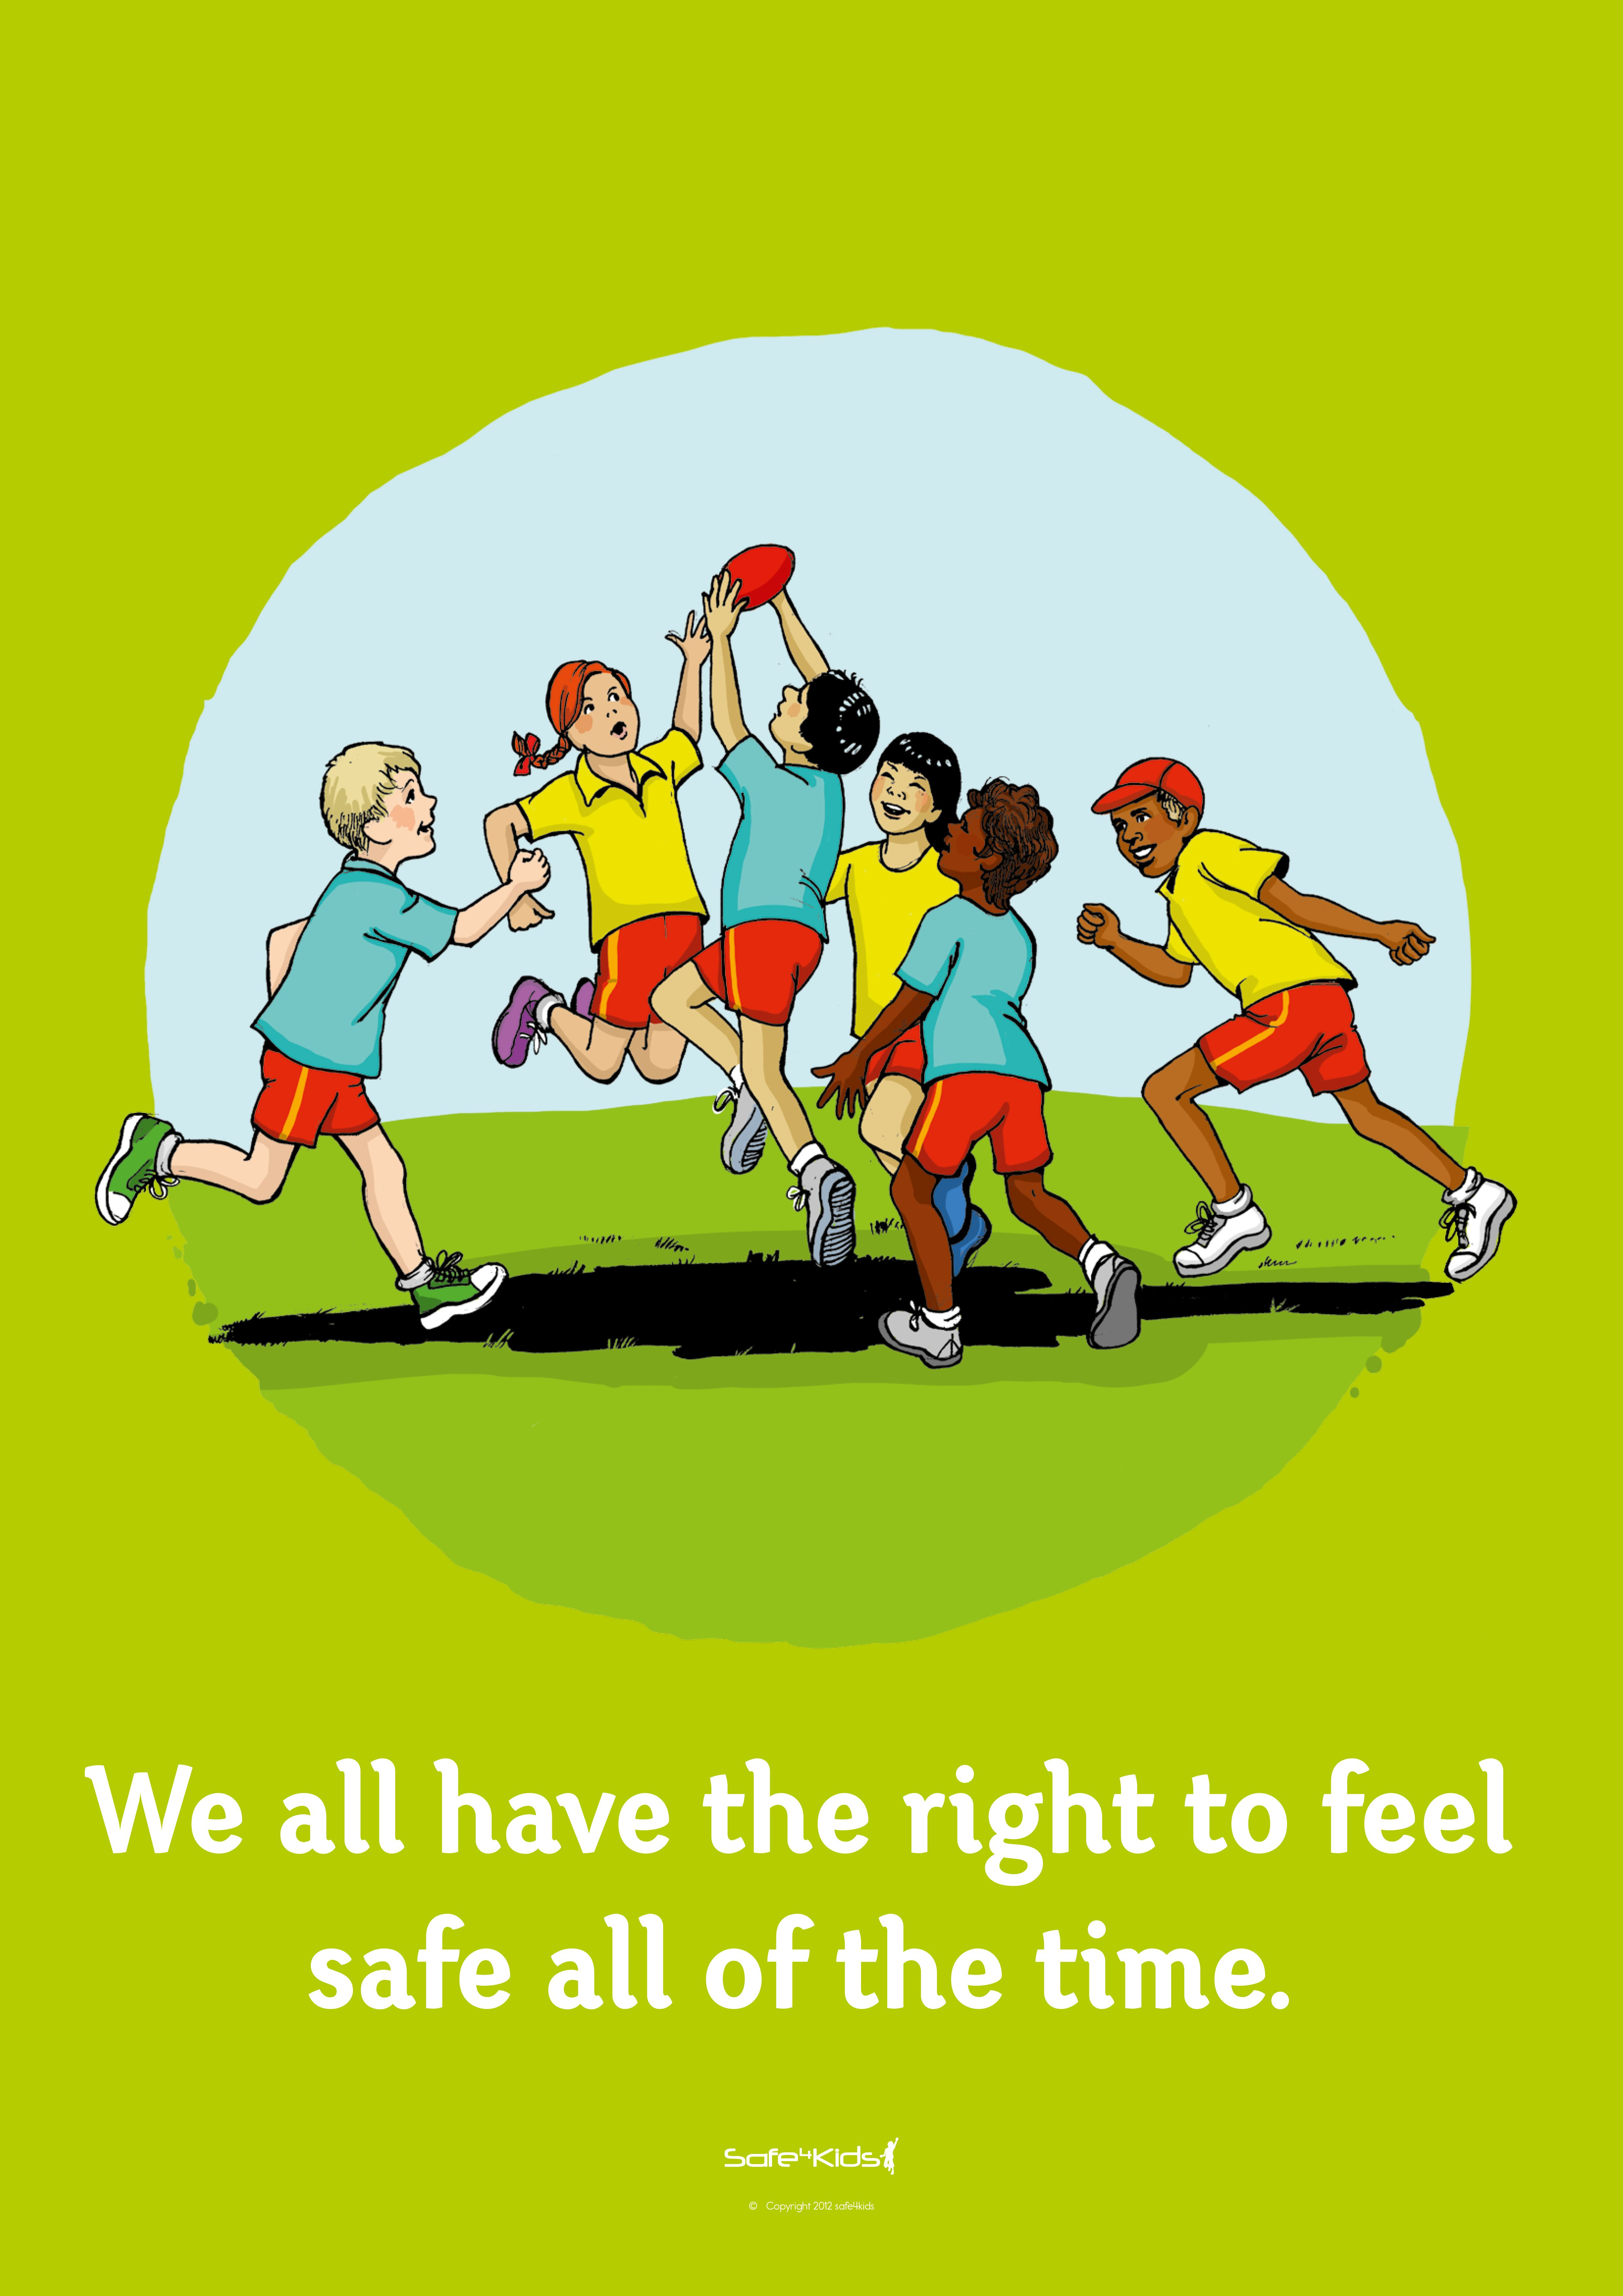 Pin By Safe4kids Resources For Keeping Children Safe On Child Protection Resouces